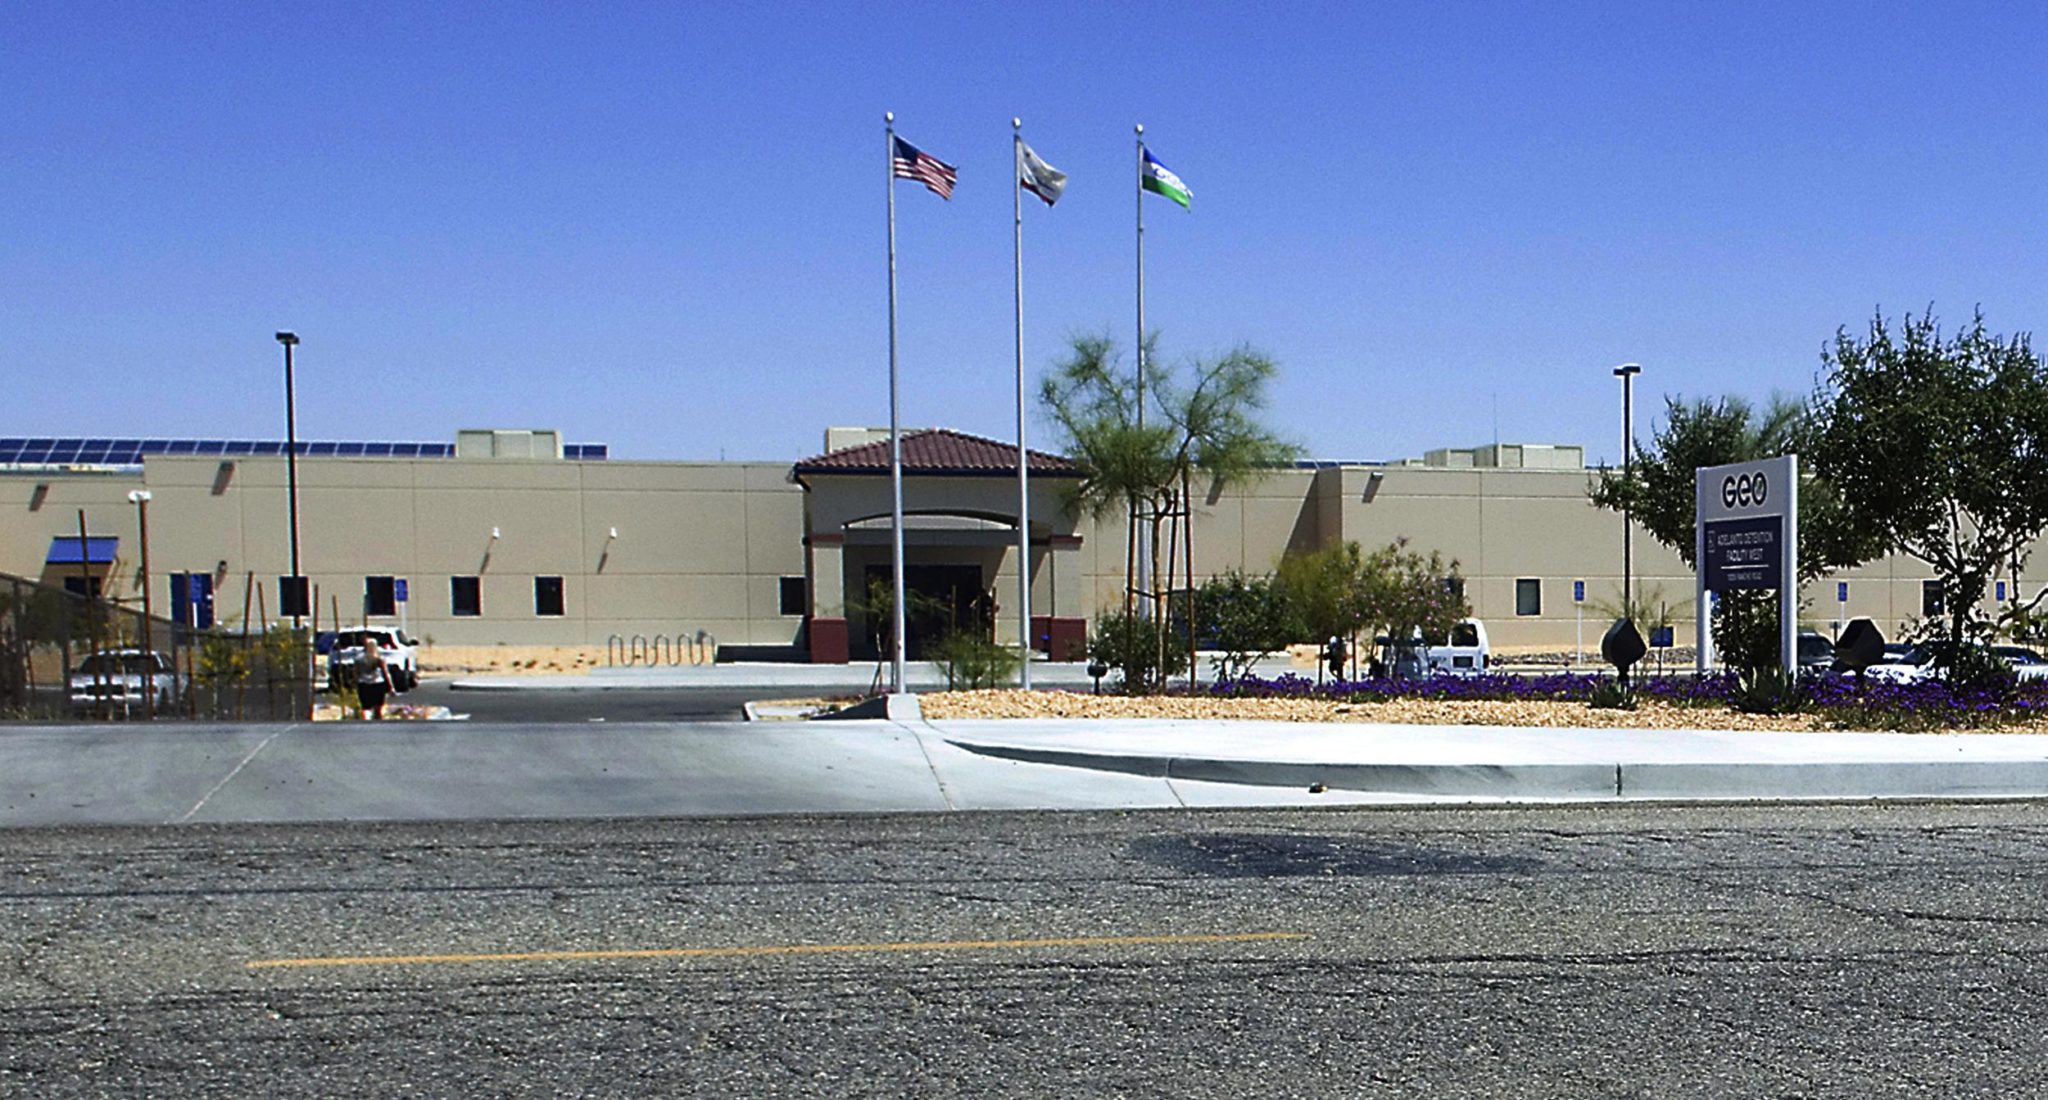 Nooses Found in California Immigration Detention Center